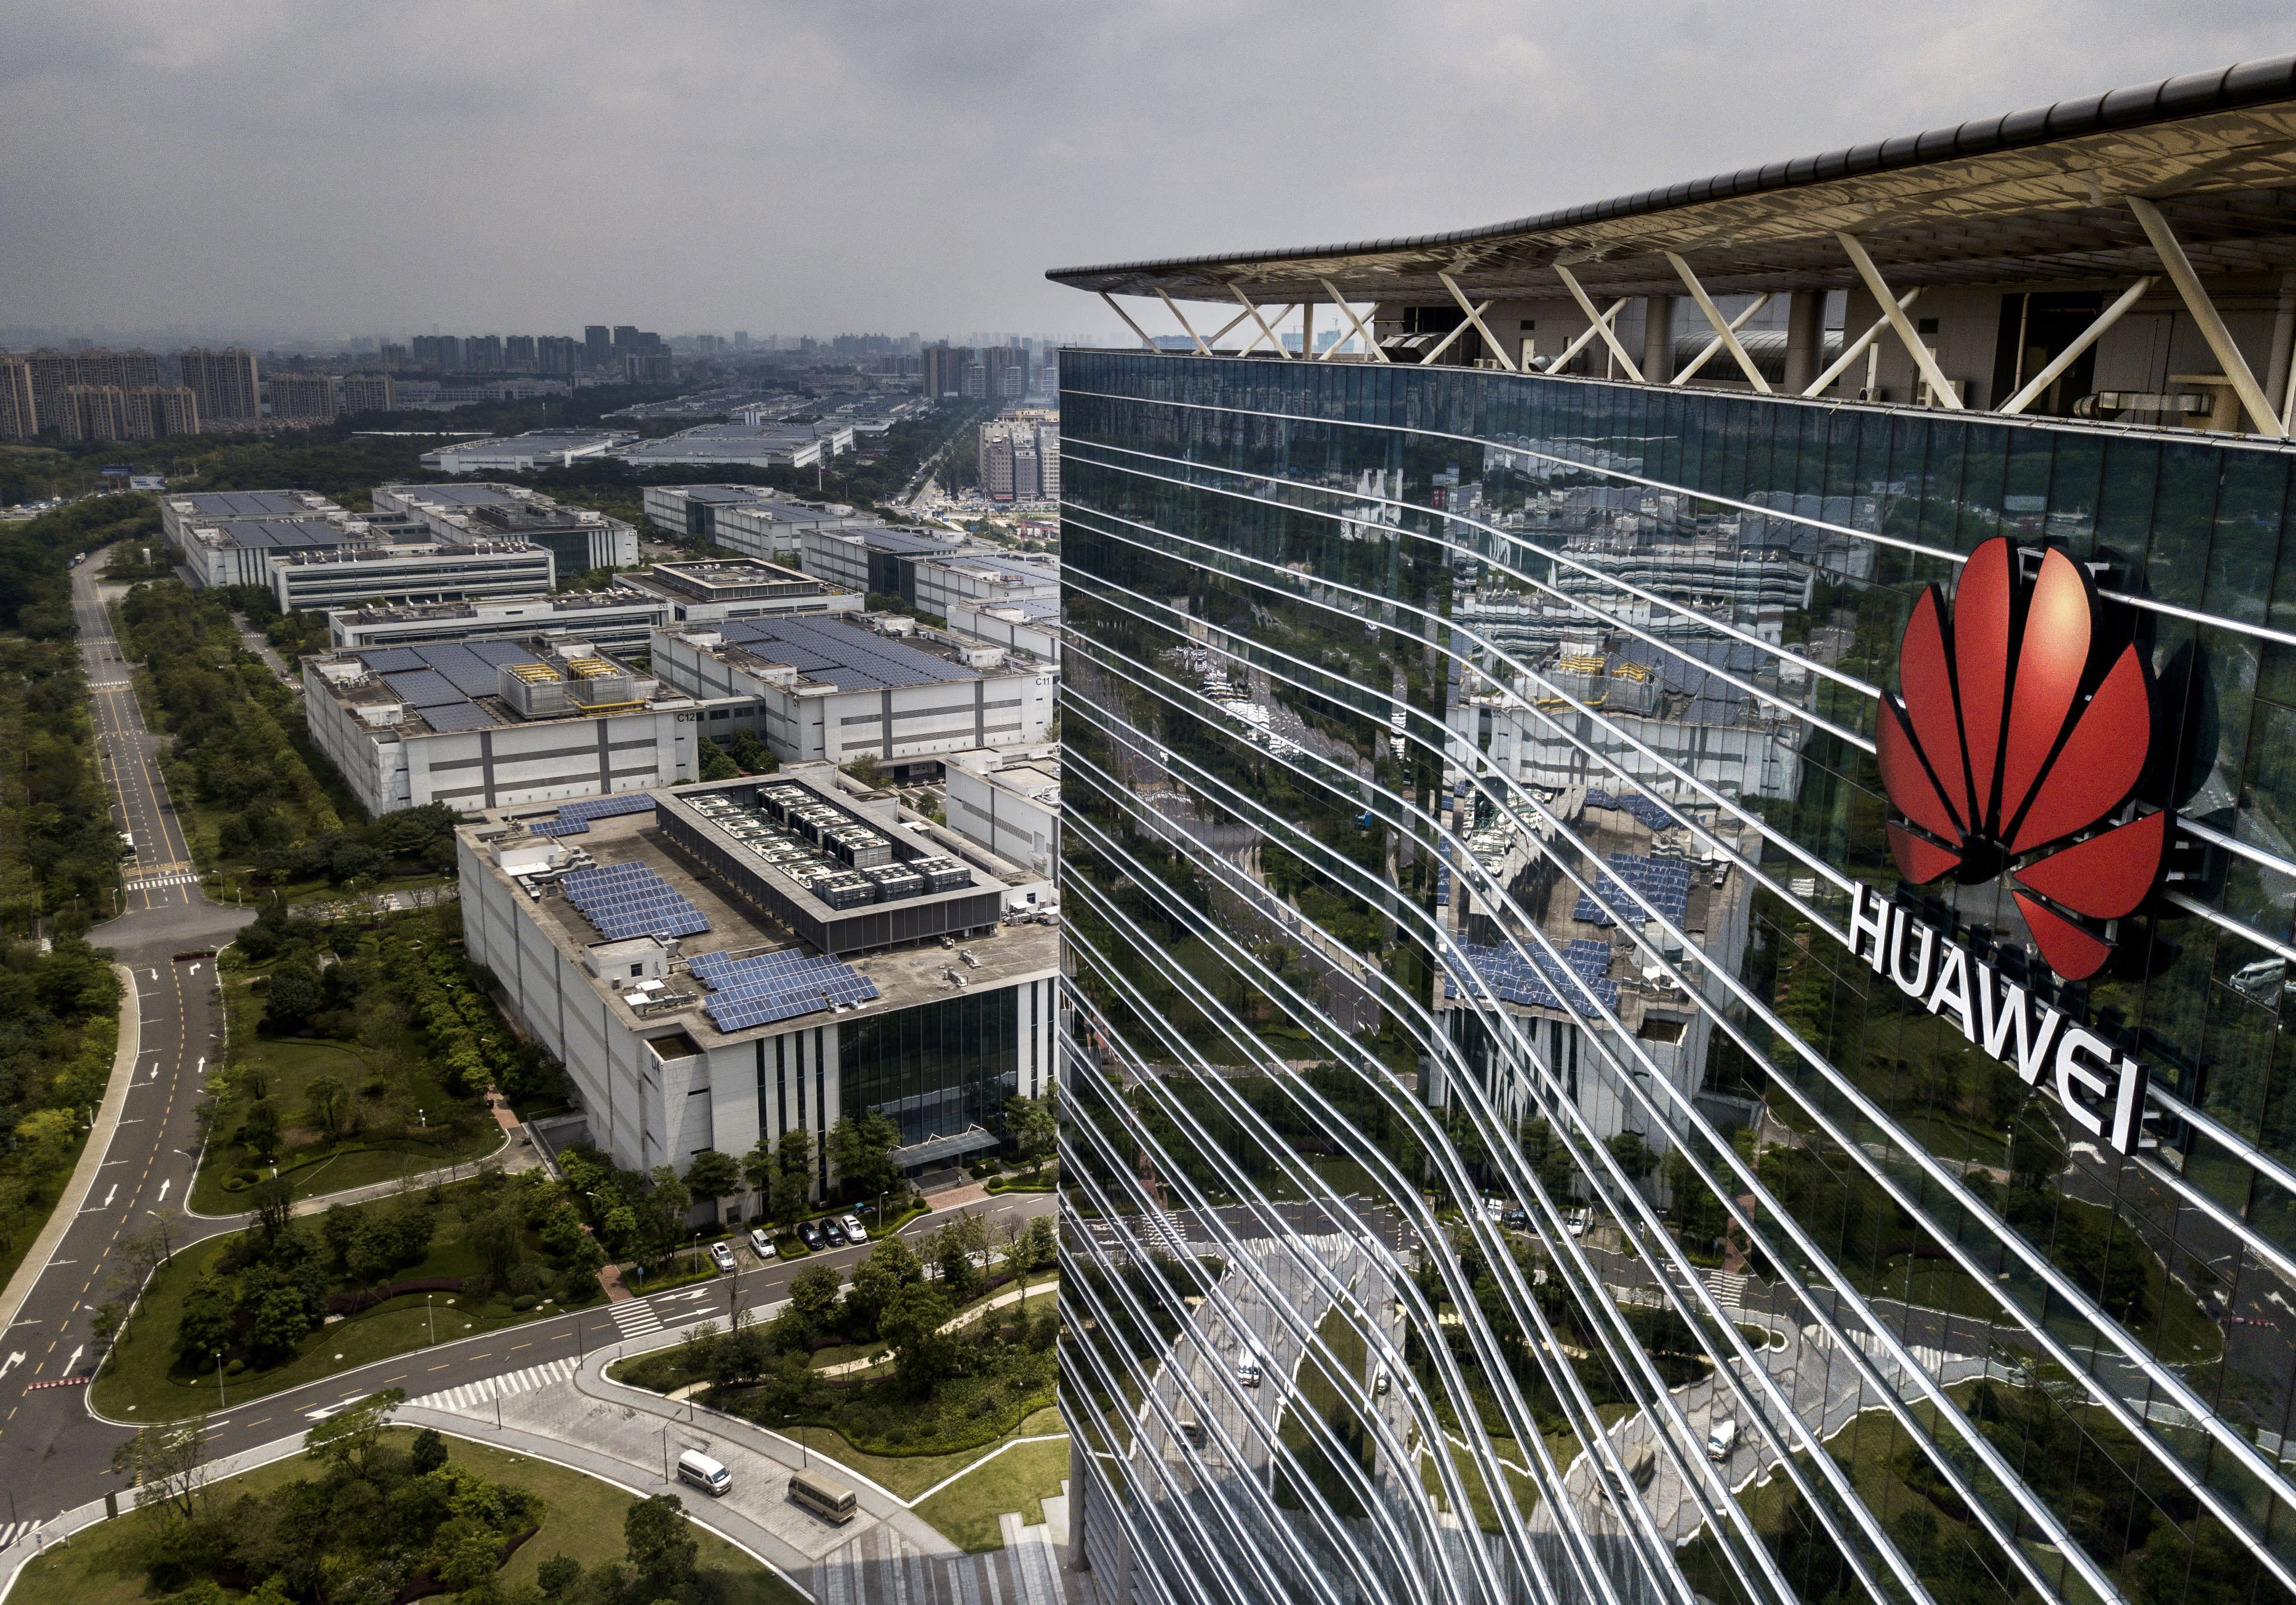 Huawei US supplier shares slide, but it says it can survive